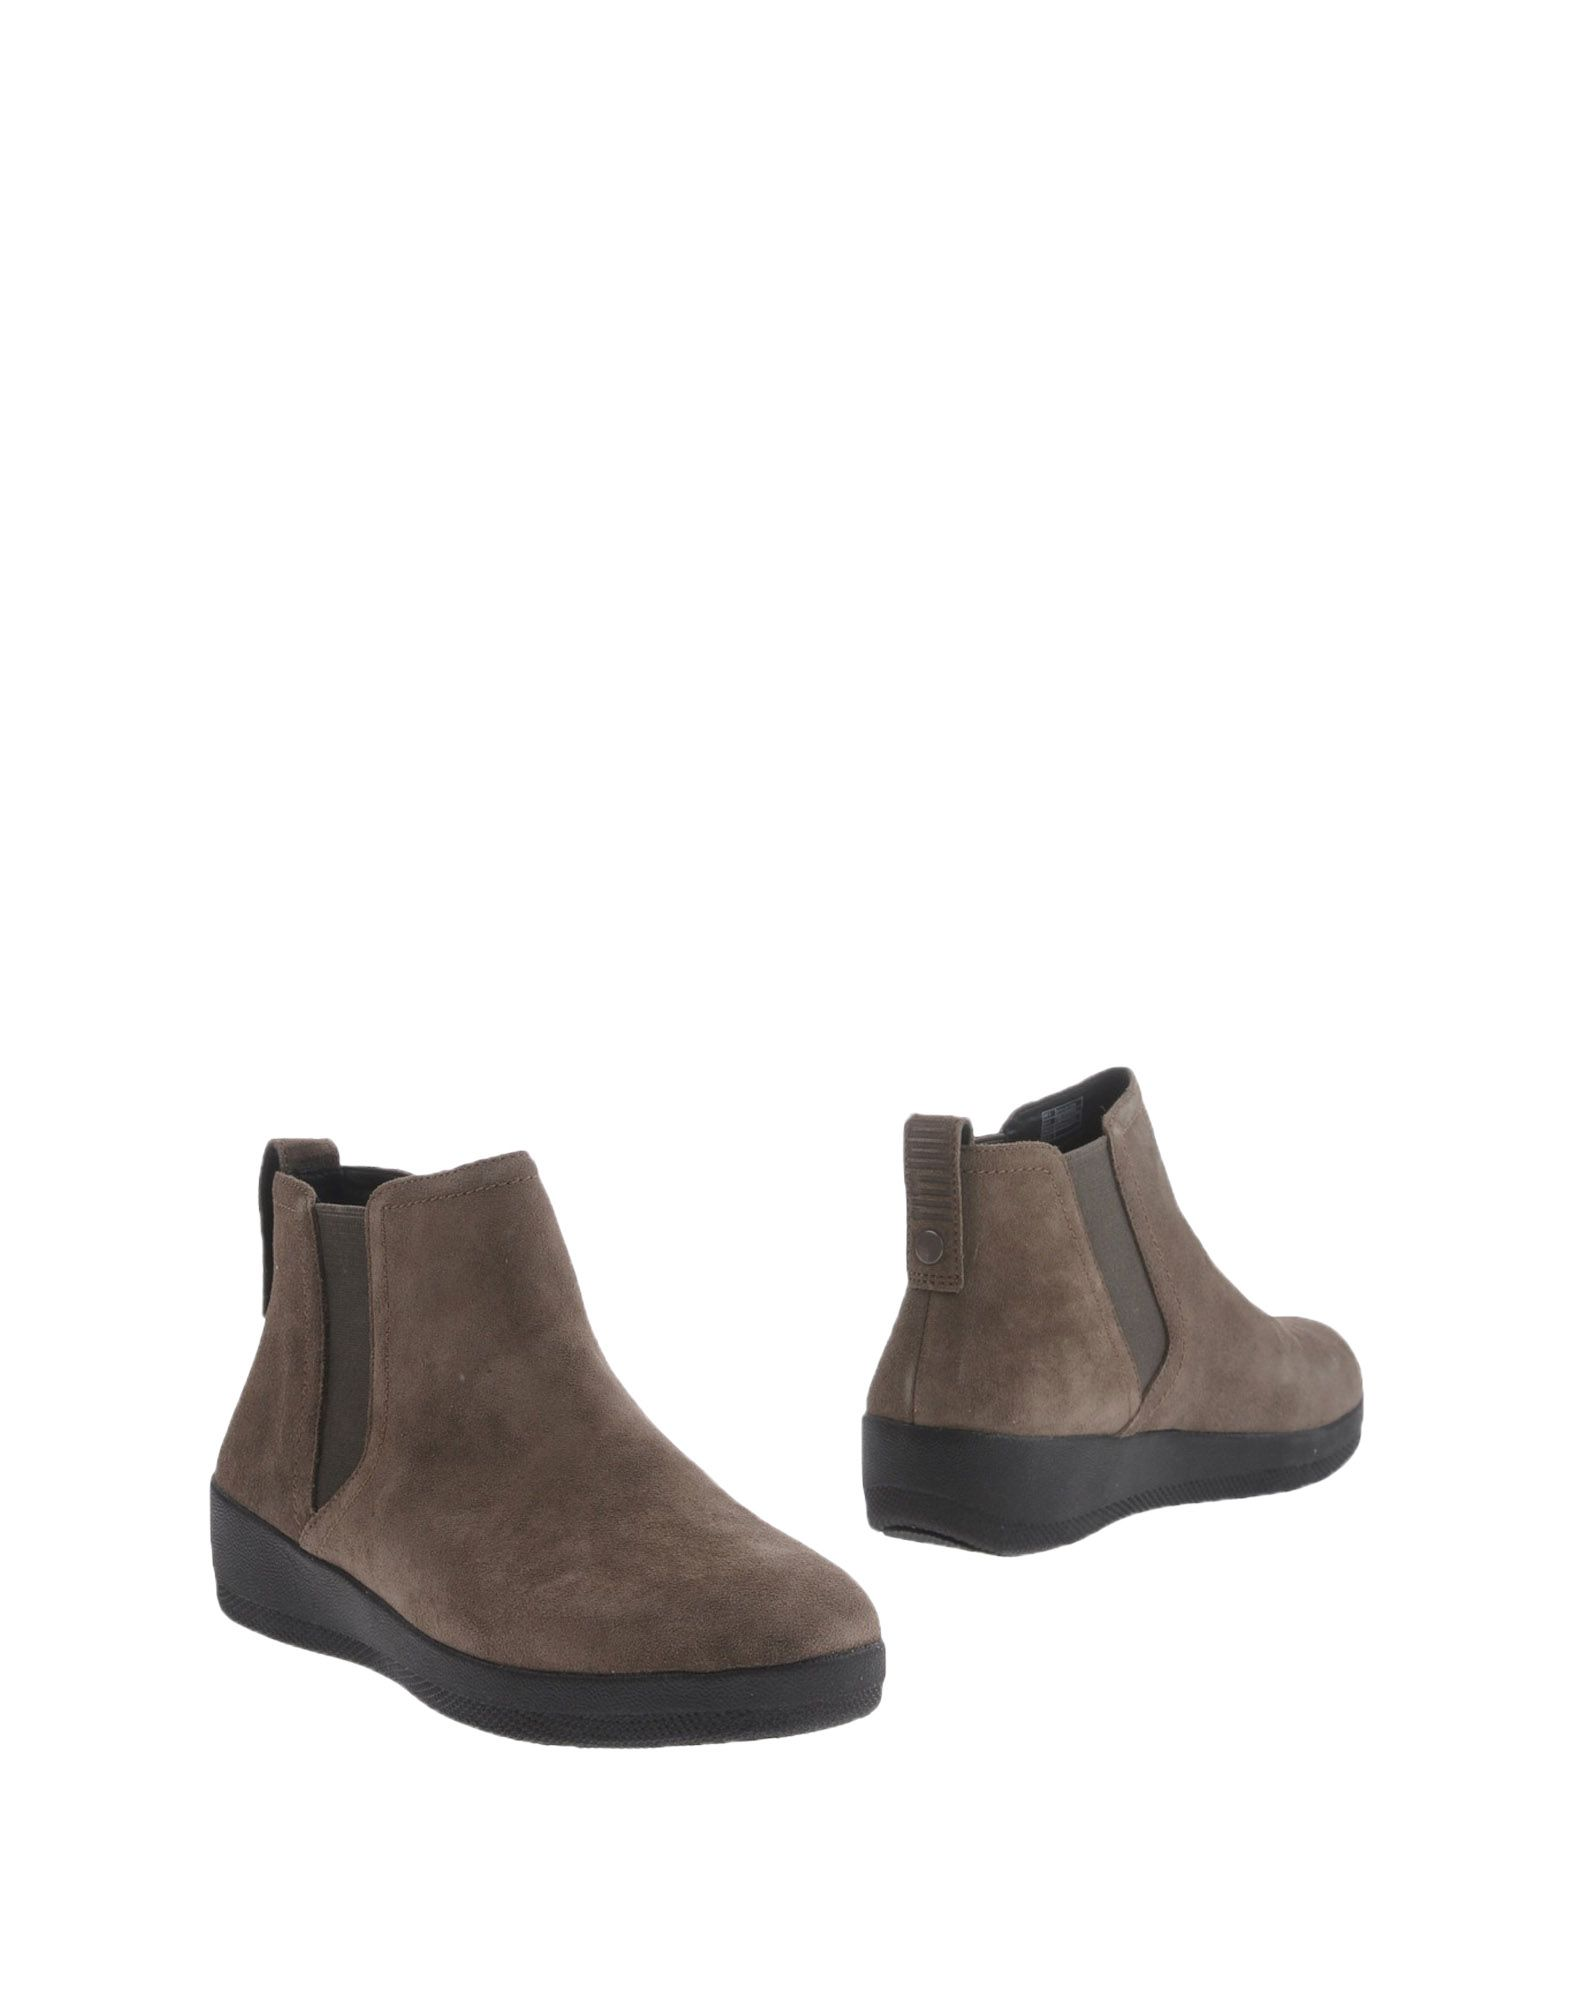 Chelsea Boots Fitflop Donna - 11219779CN 11219779CN - 43412f